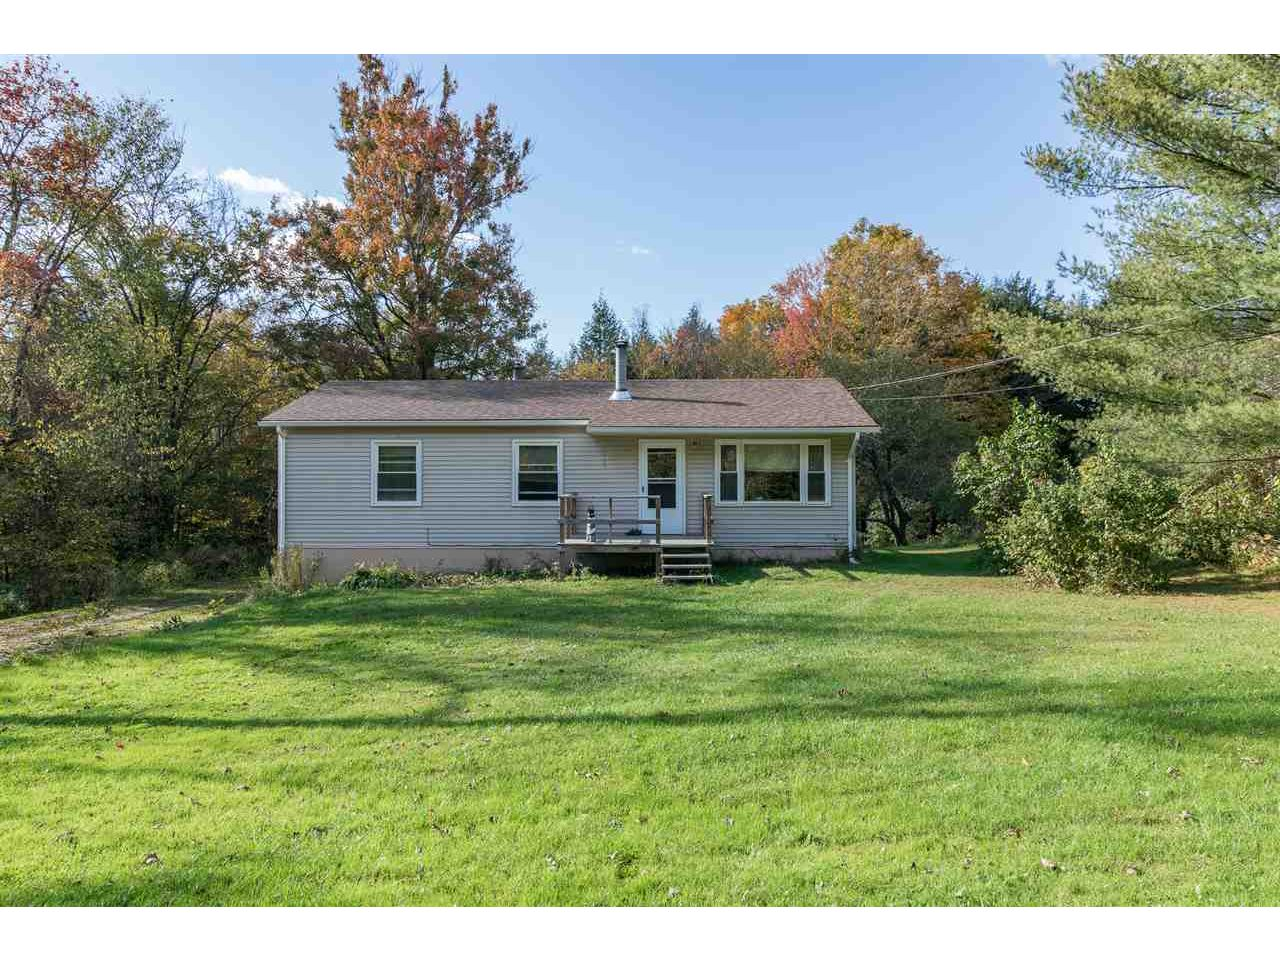 Sold property in Huntington